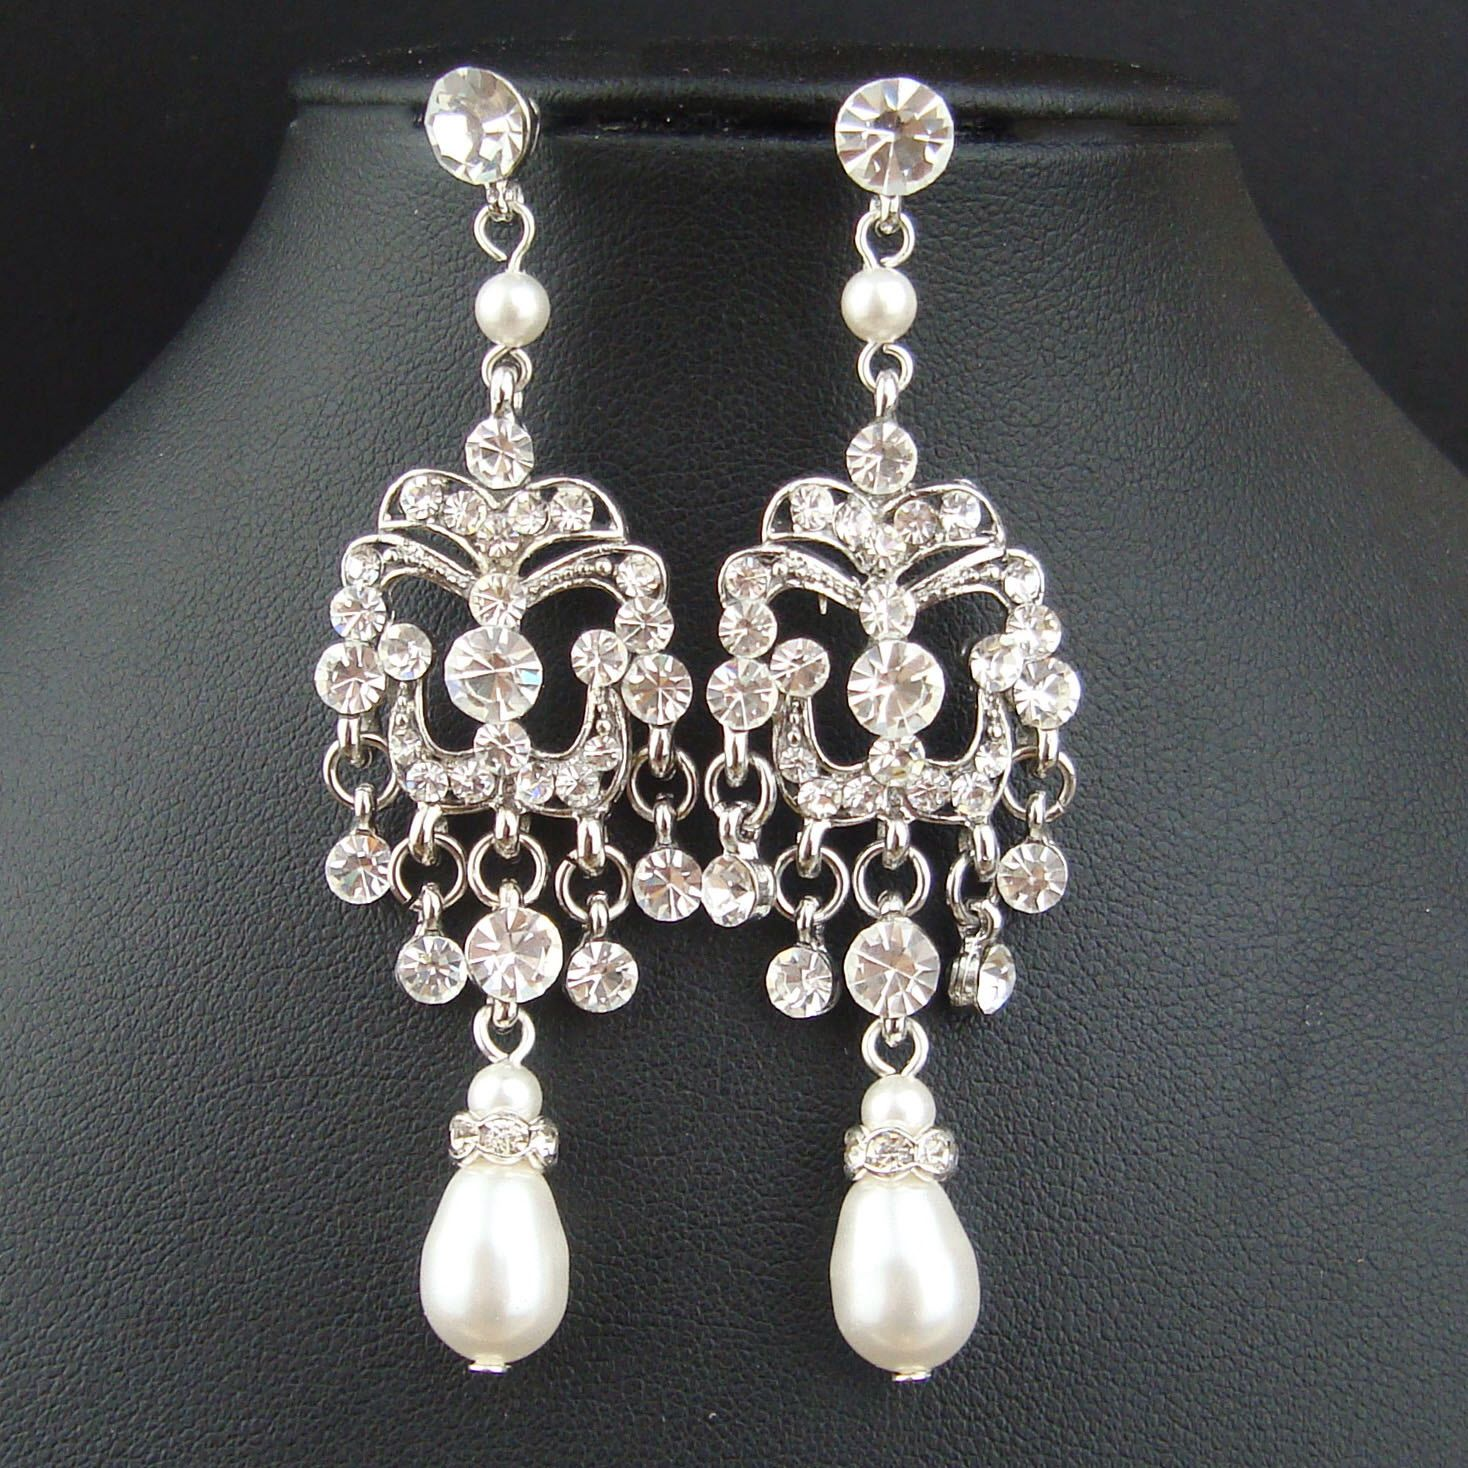 Art deco chandelier bridal earrings statement wedding earrings art deco chandelier bridal earrings statement wedding earrings vintage wedding jewelry long dangly bridal jewelry patricia arubaitofo Choice Image